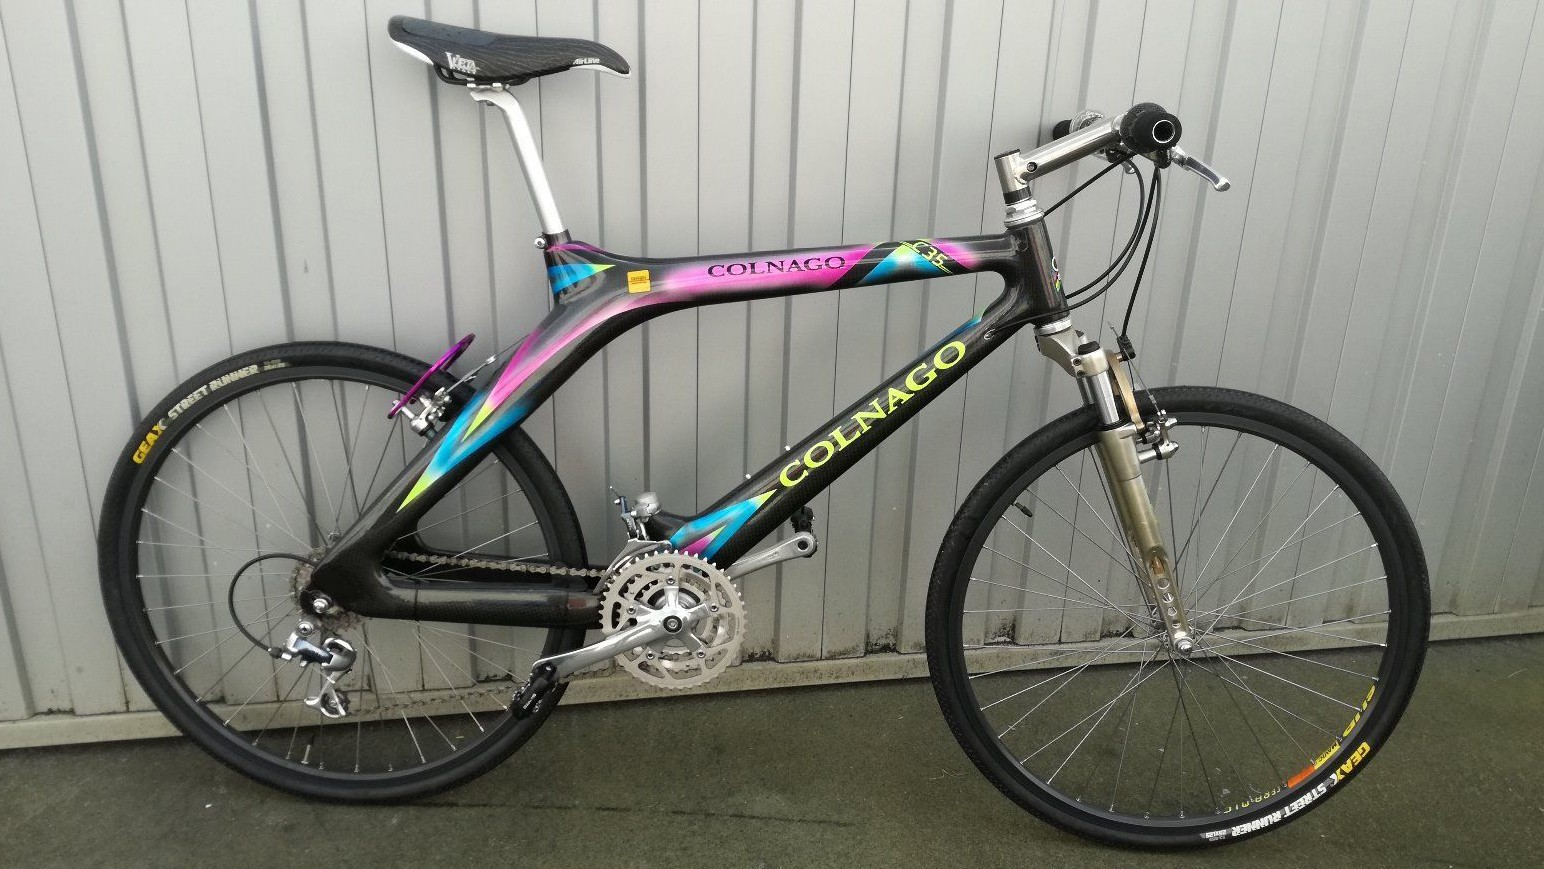 This Colnago C35 mountain bike was one of the first carbon mountain bikes